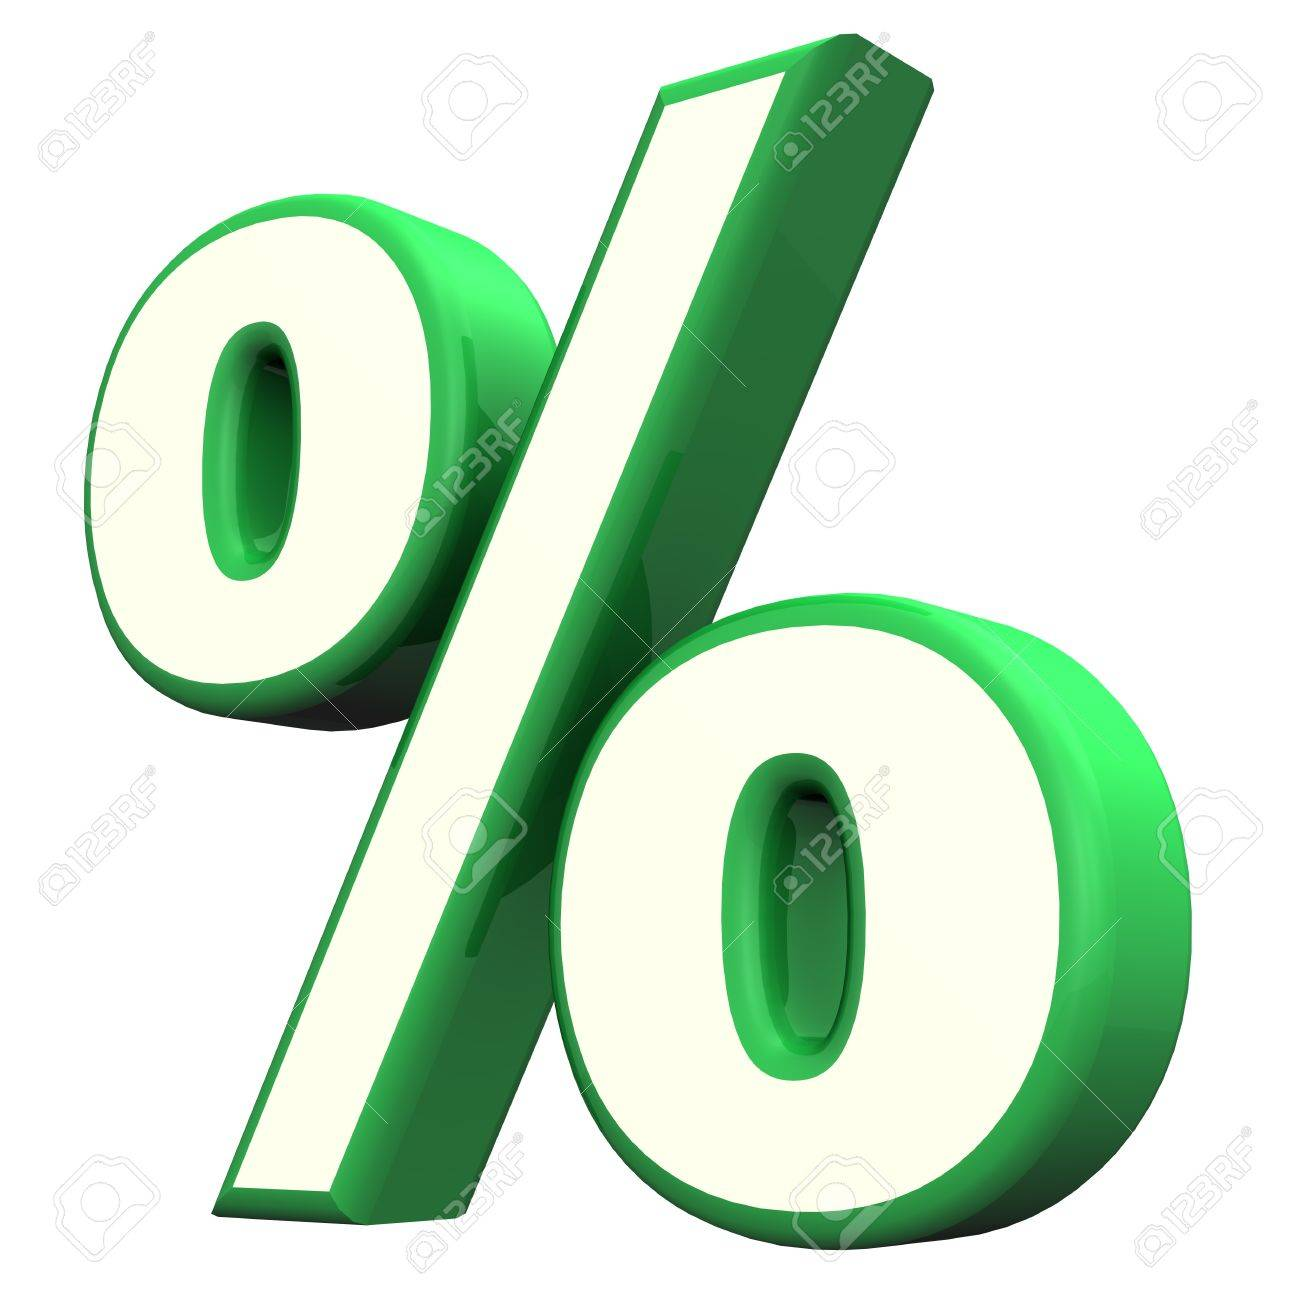 Green Per Cent Symbol On The White Background Stock Photo Picture